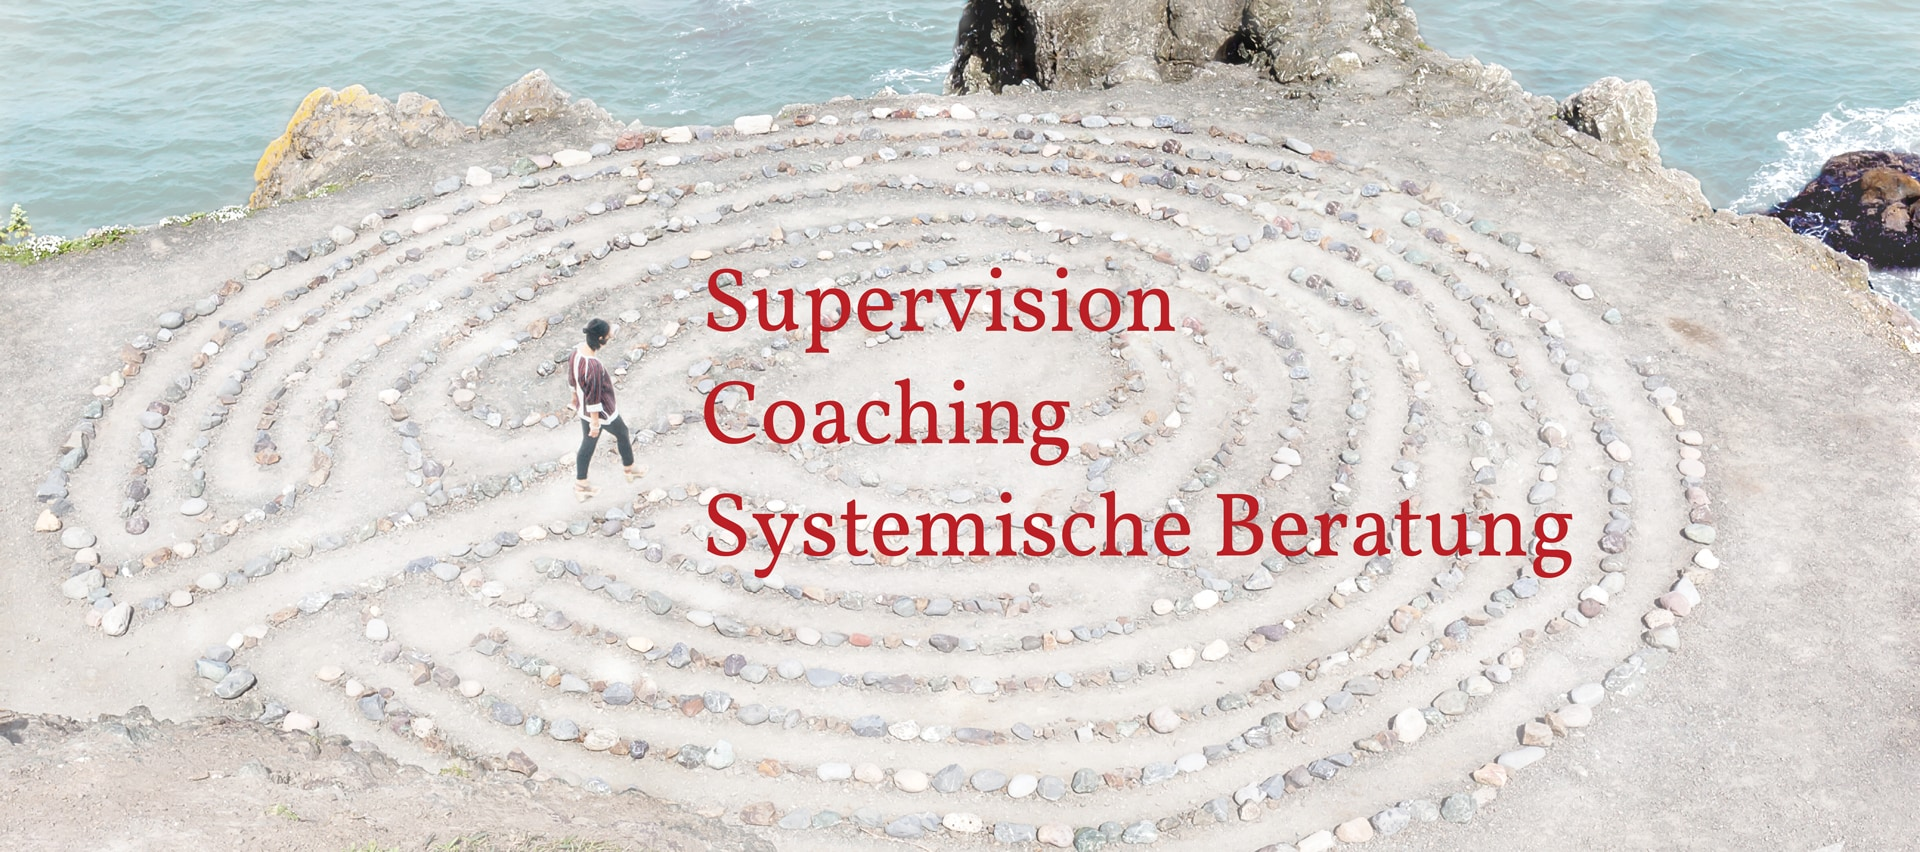 Supervision Coaching Systemische Beratung in Aachen